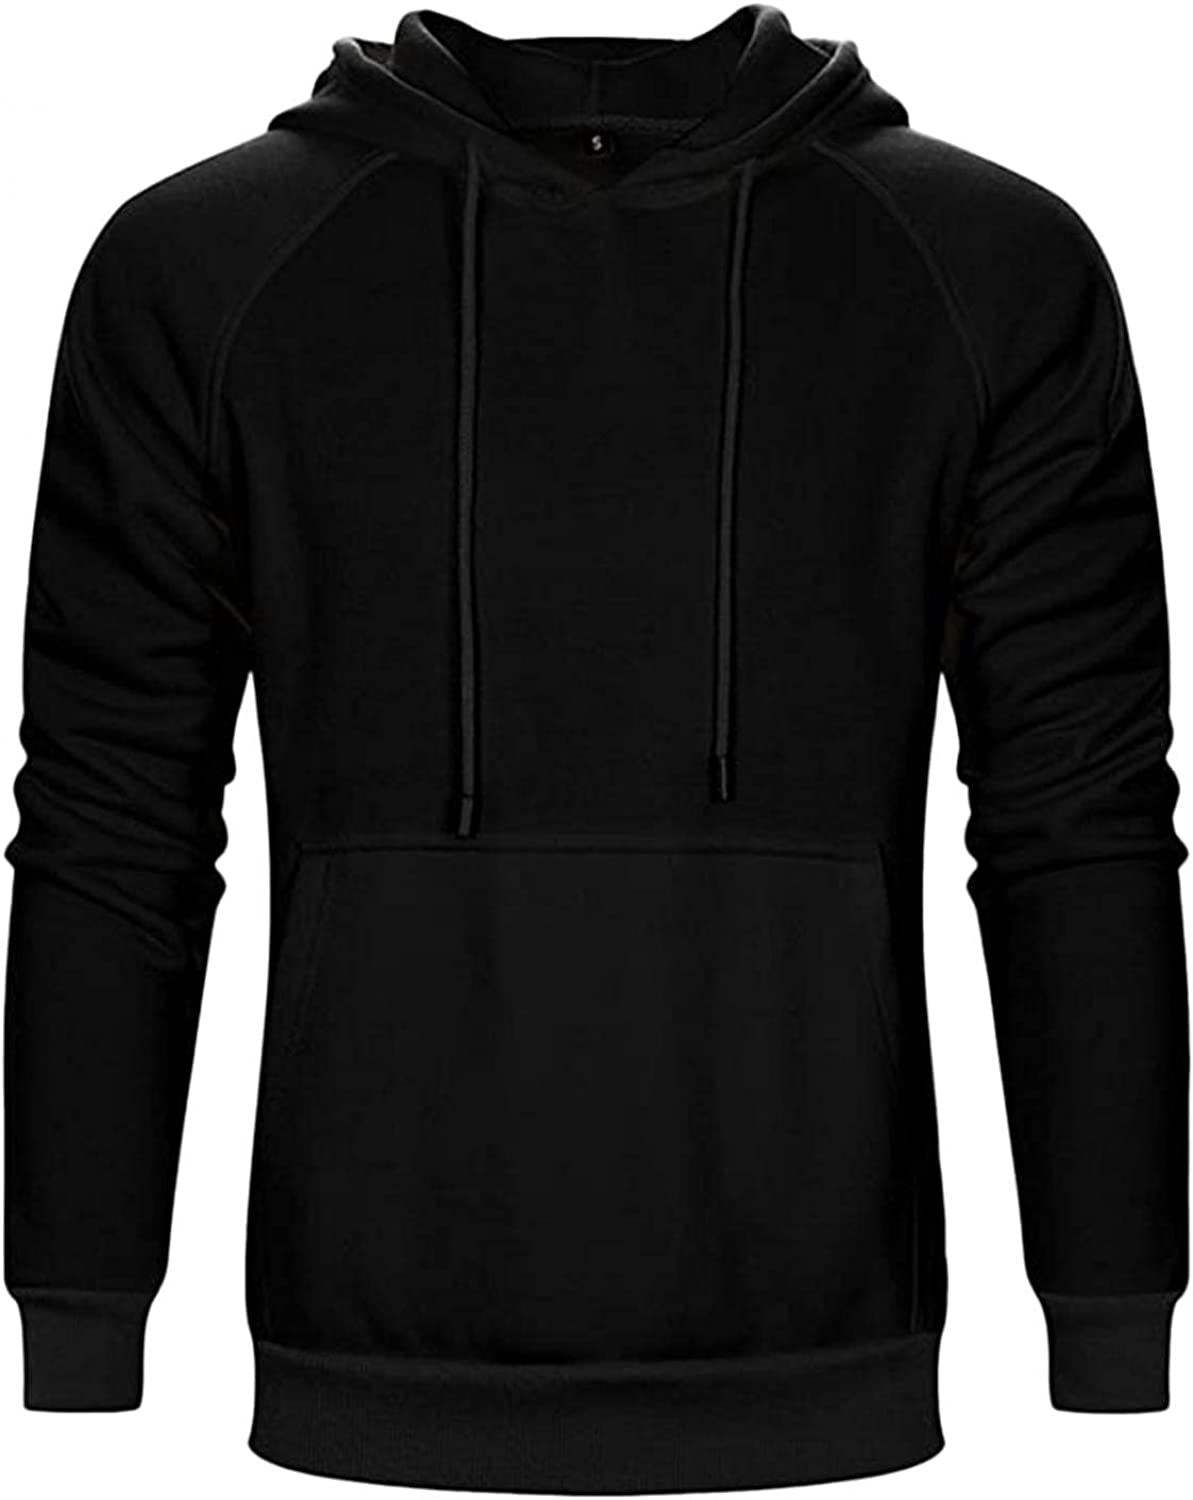 LEIYAN Mens Casual Hoodie Pullover Lightweight Oversized Sweatshirt Active Slim Fit Gym Workout Pullover